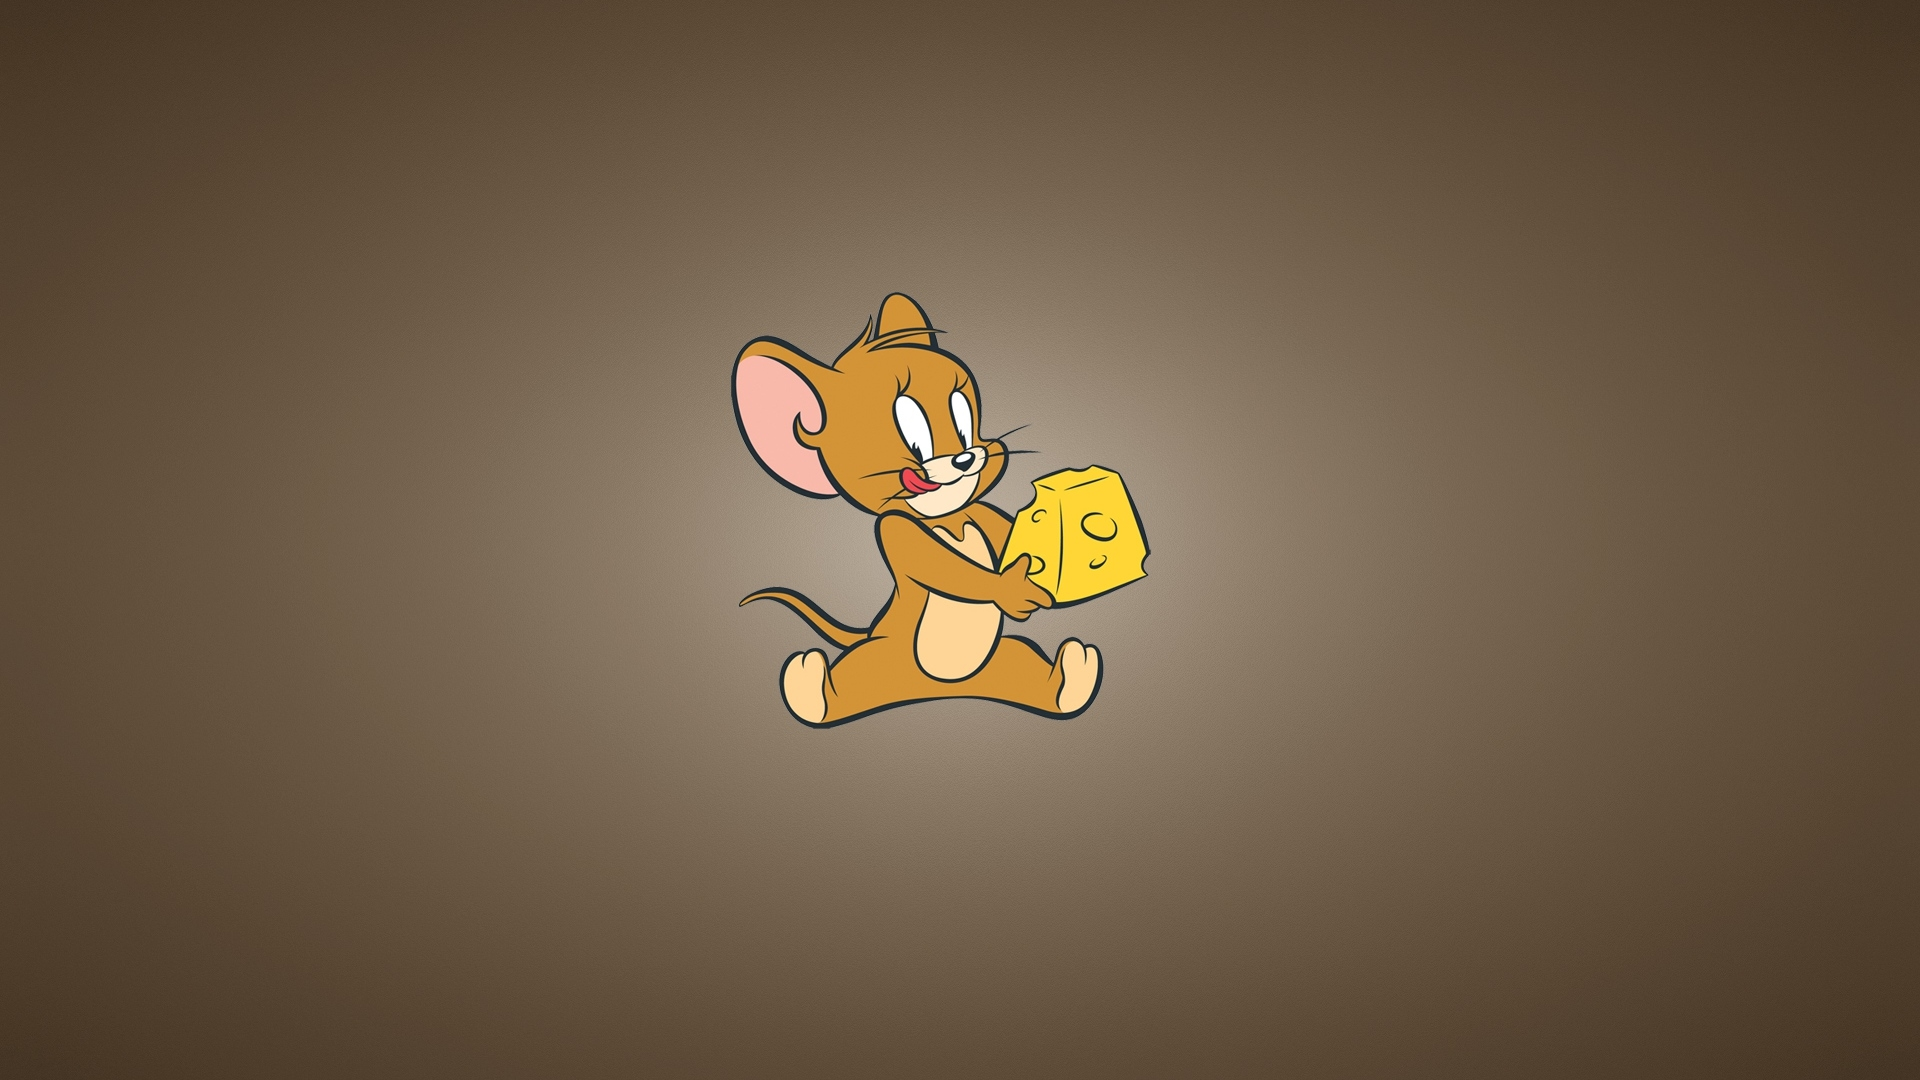 Ipl Hd Wallpapers For Desktop Tom And Jerry Wallpapers Page 2